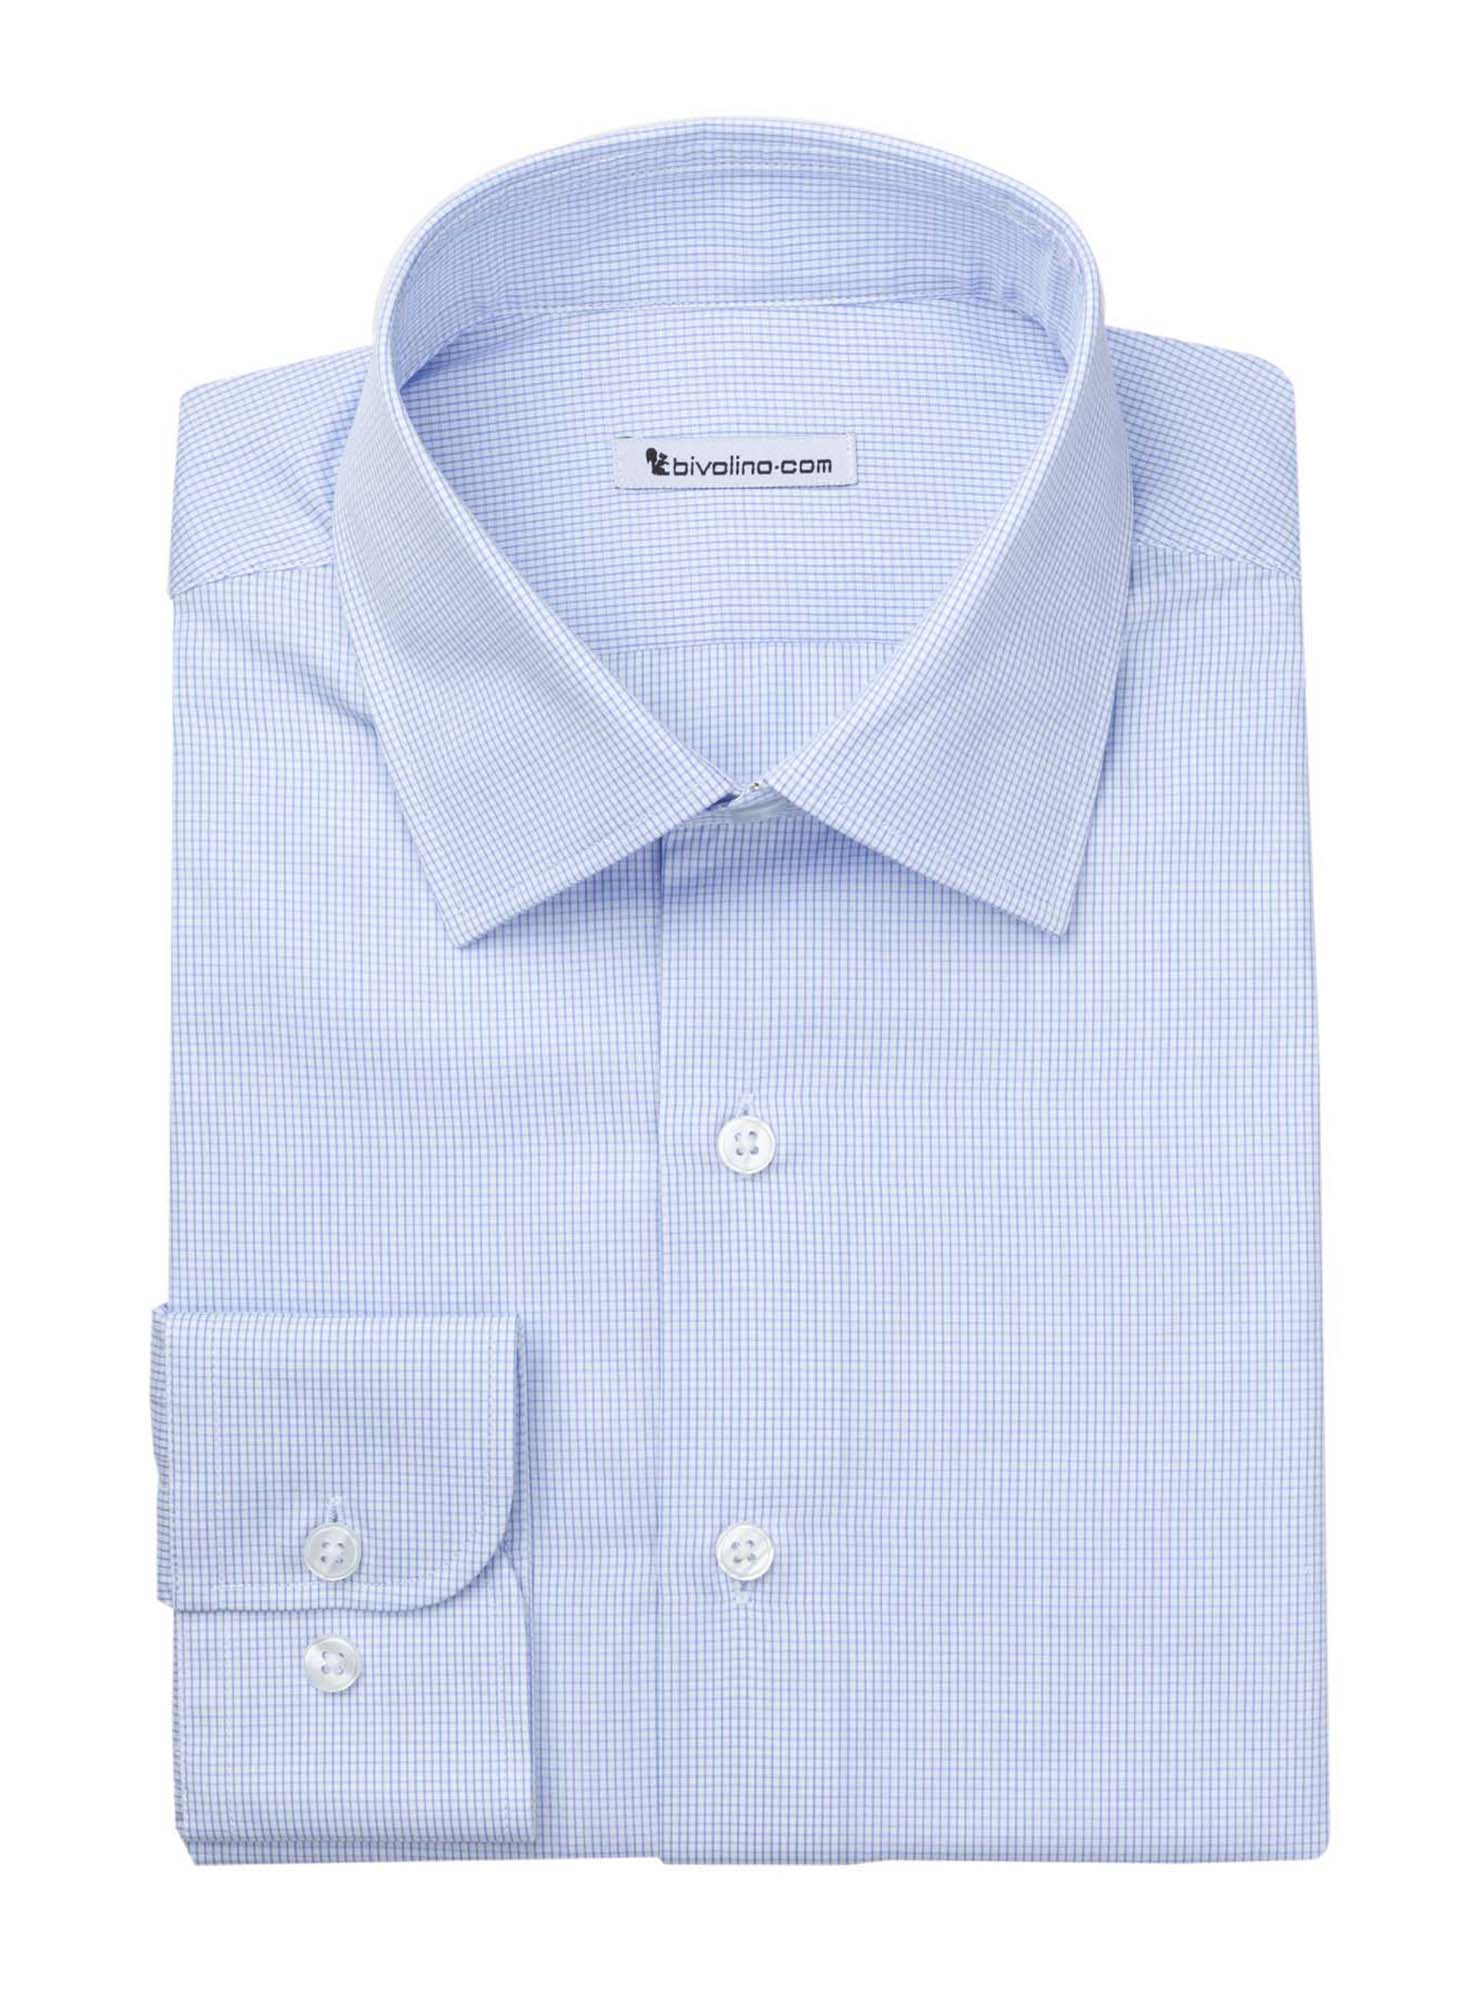 PRAZOLLO  - Men's shrt cotton 2ply blue check - DOCRA 7